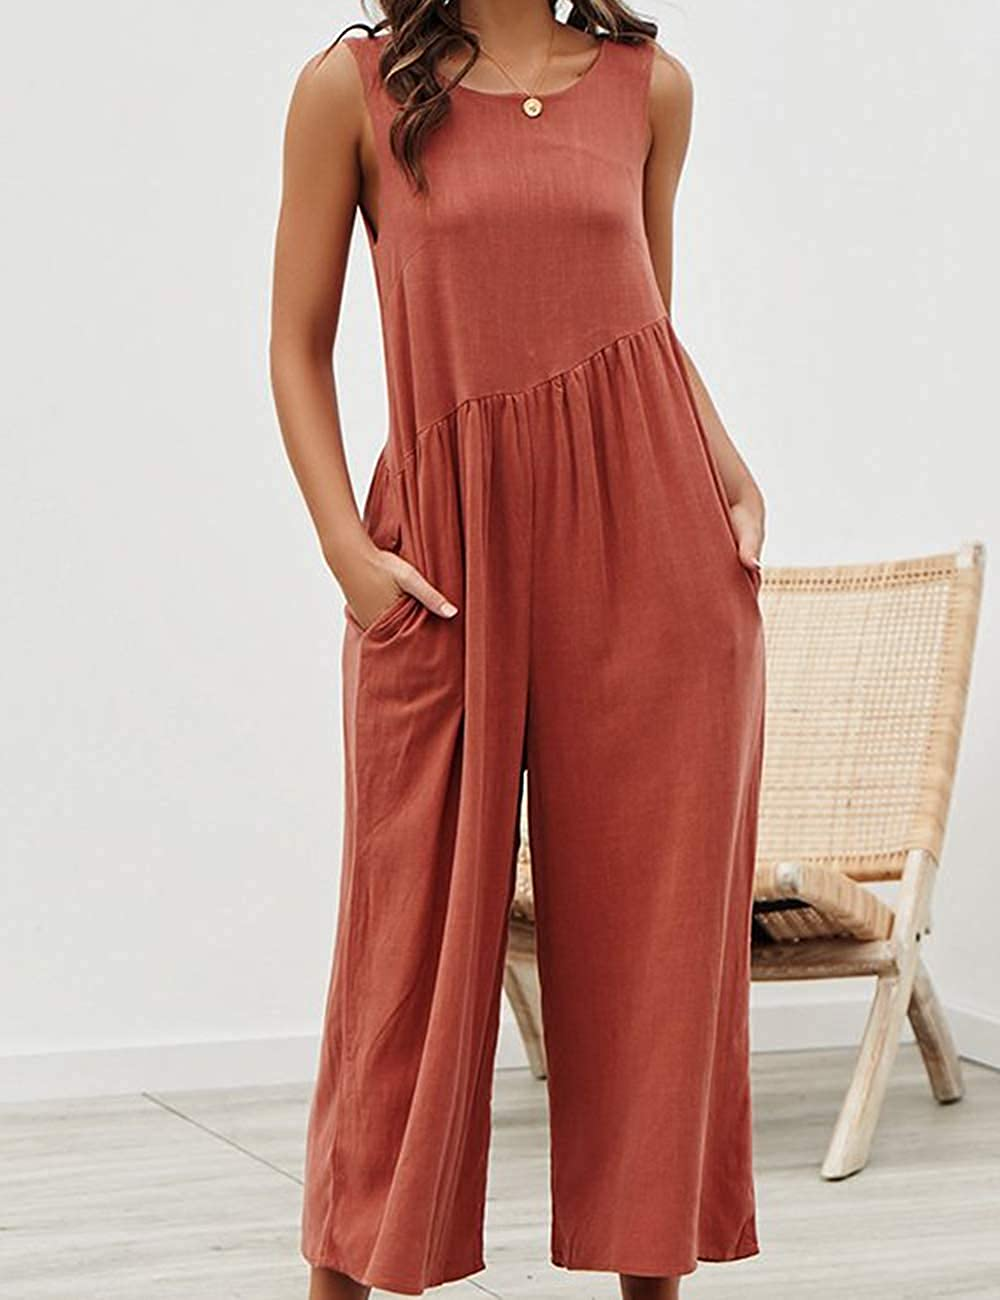 Sfuzwg Women Jumpsuit Casual Chiffon Sleeveless Wide Leg Loose Romper with Pockets